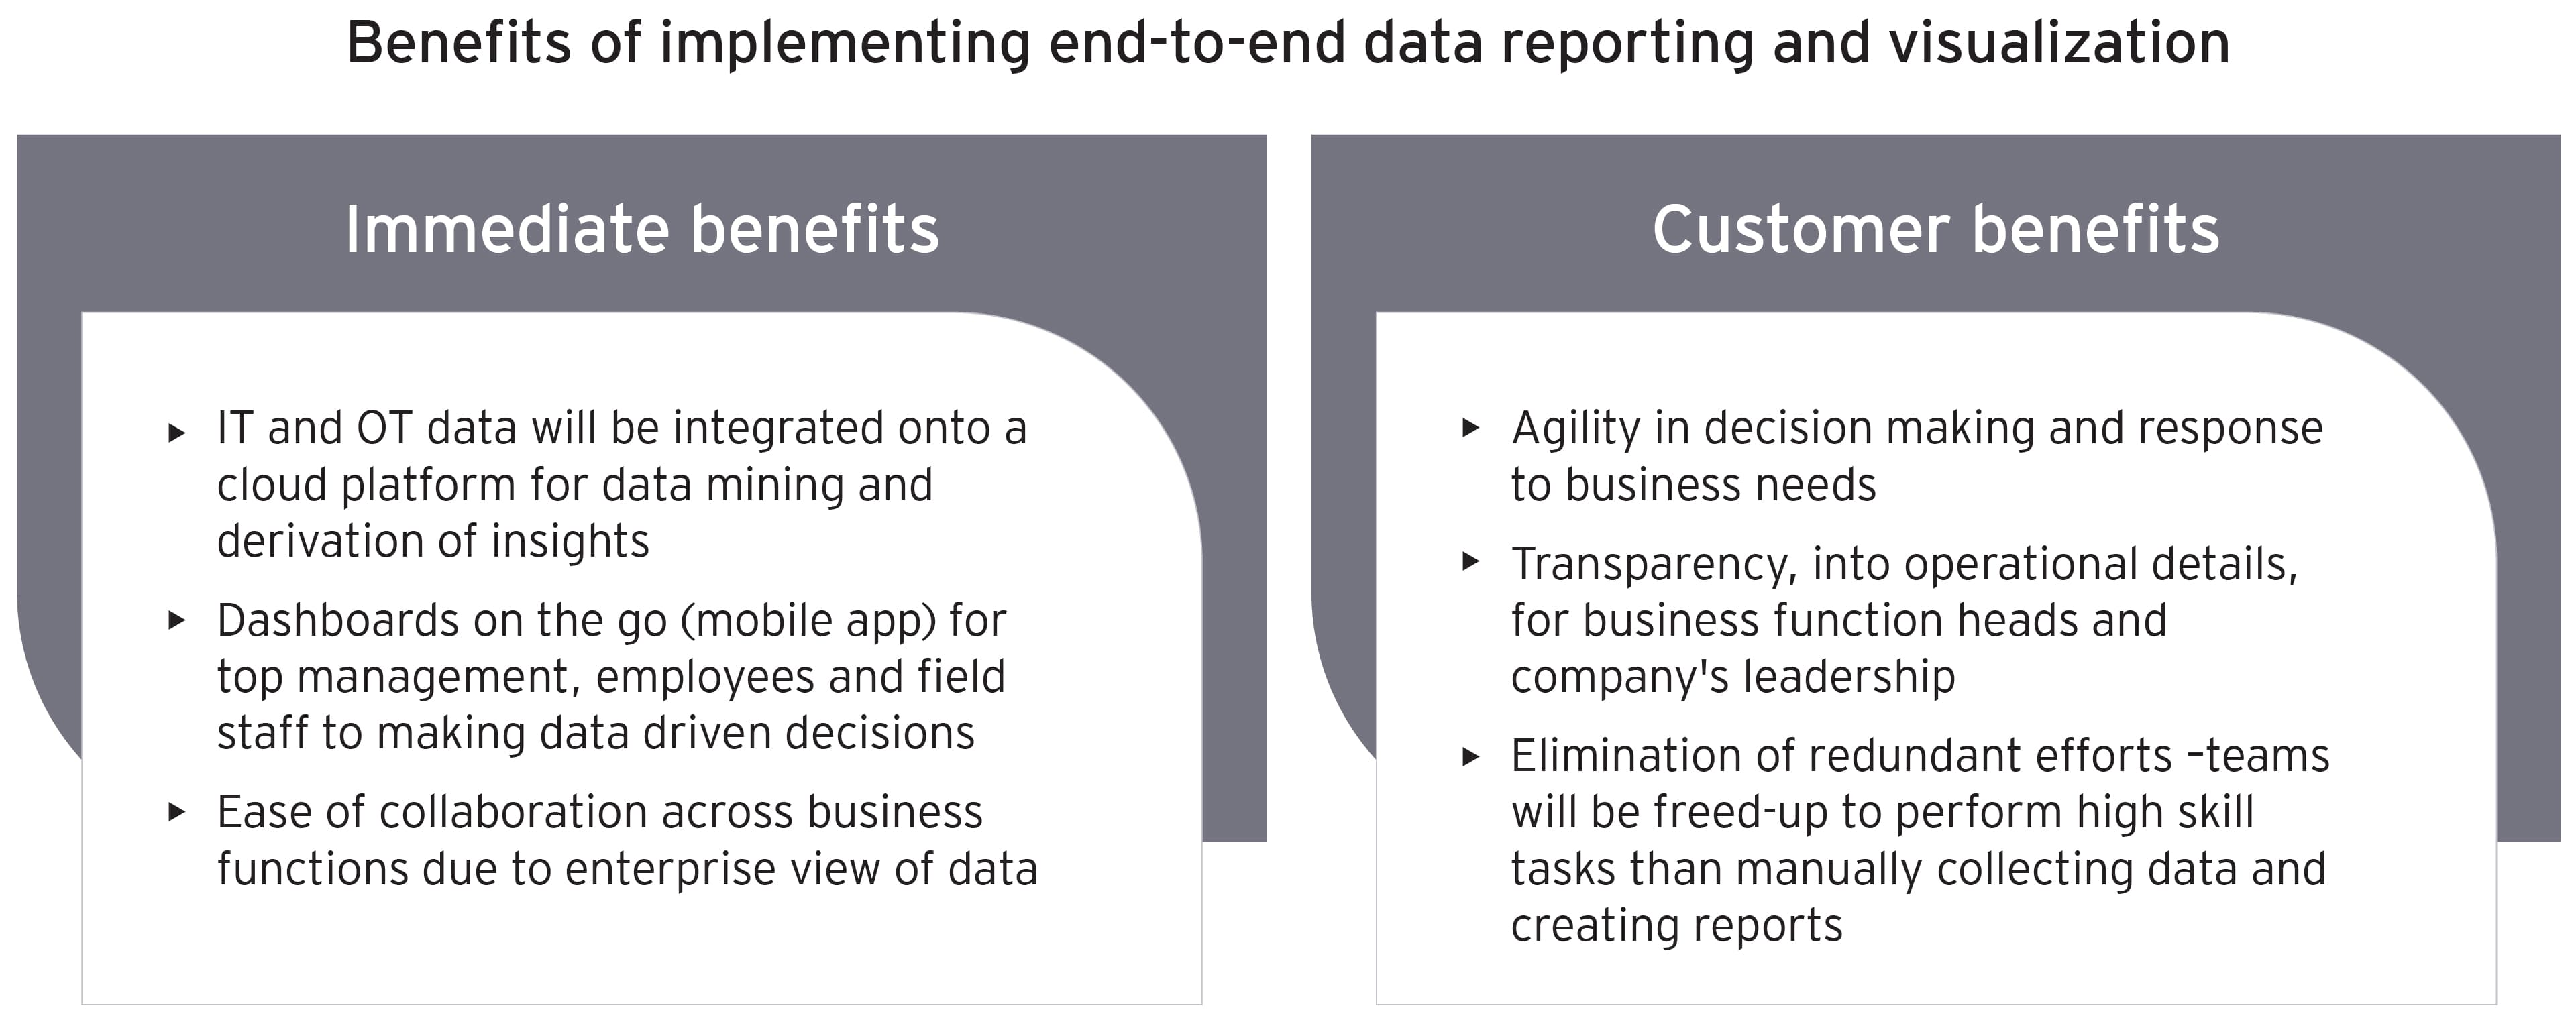 Benefits of implementing end-to-end data reporting and visualization